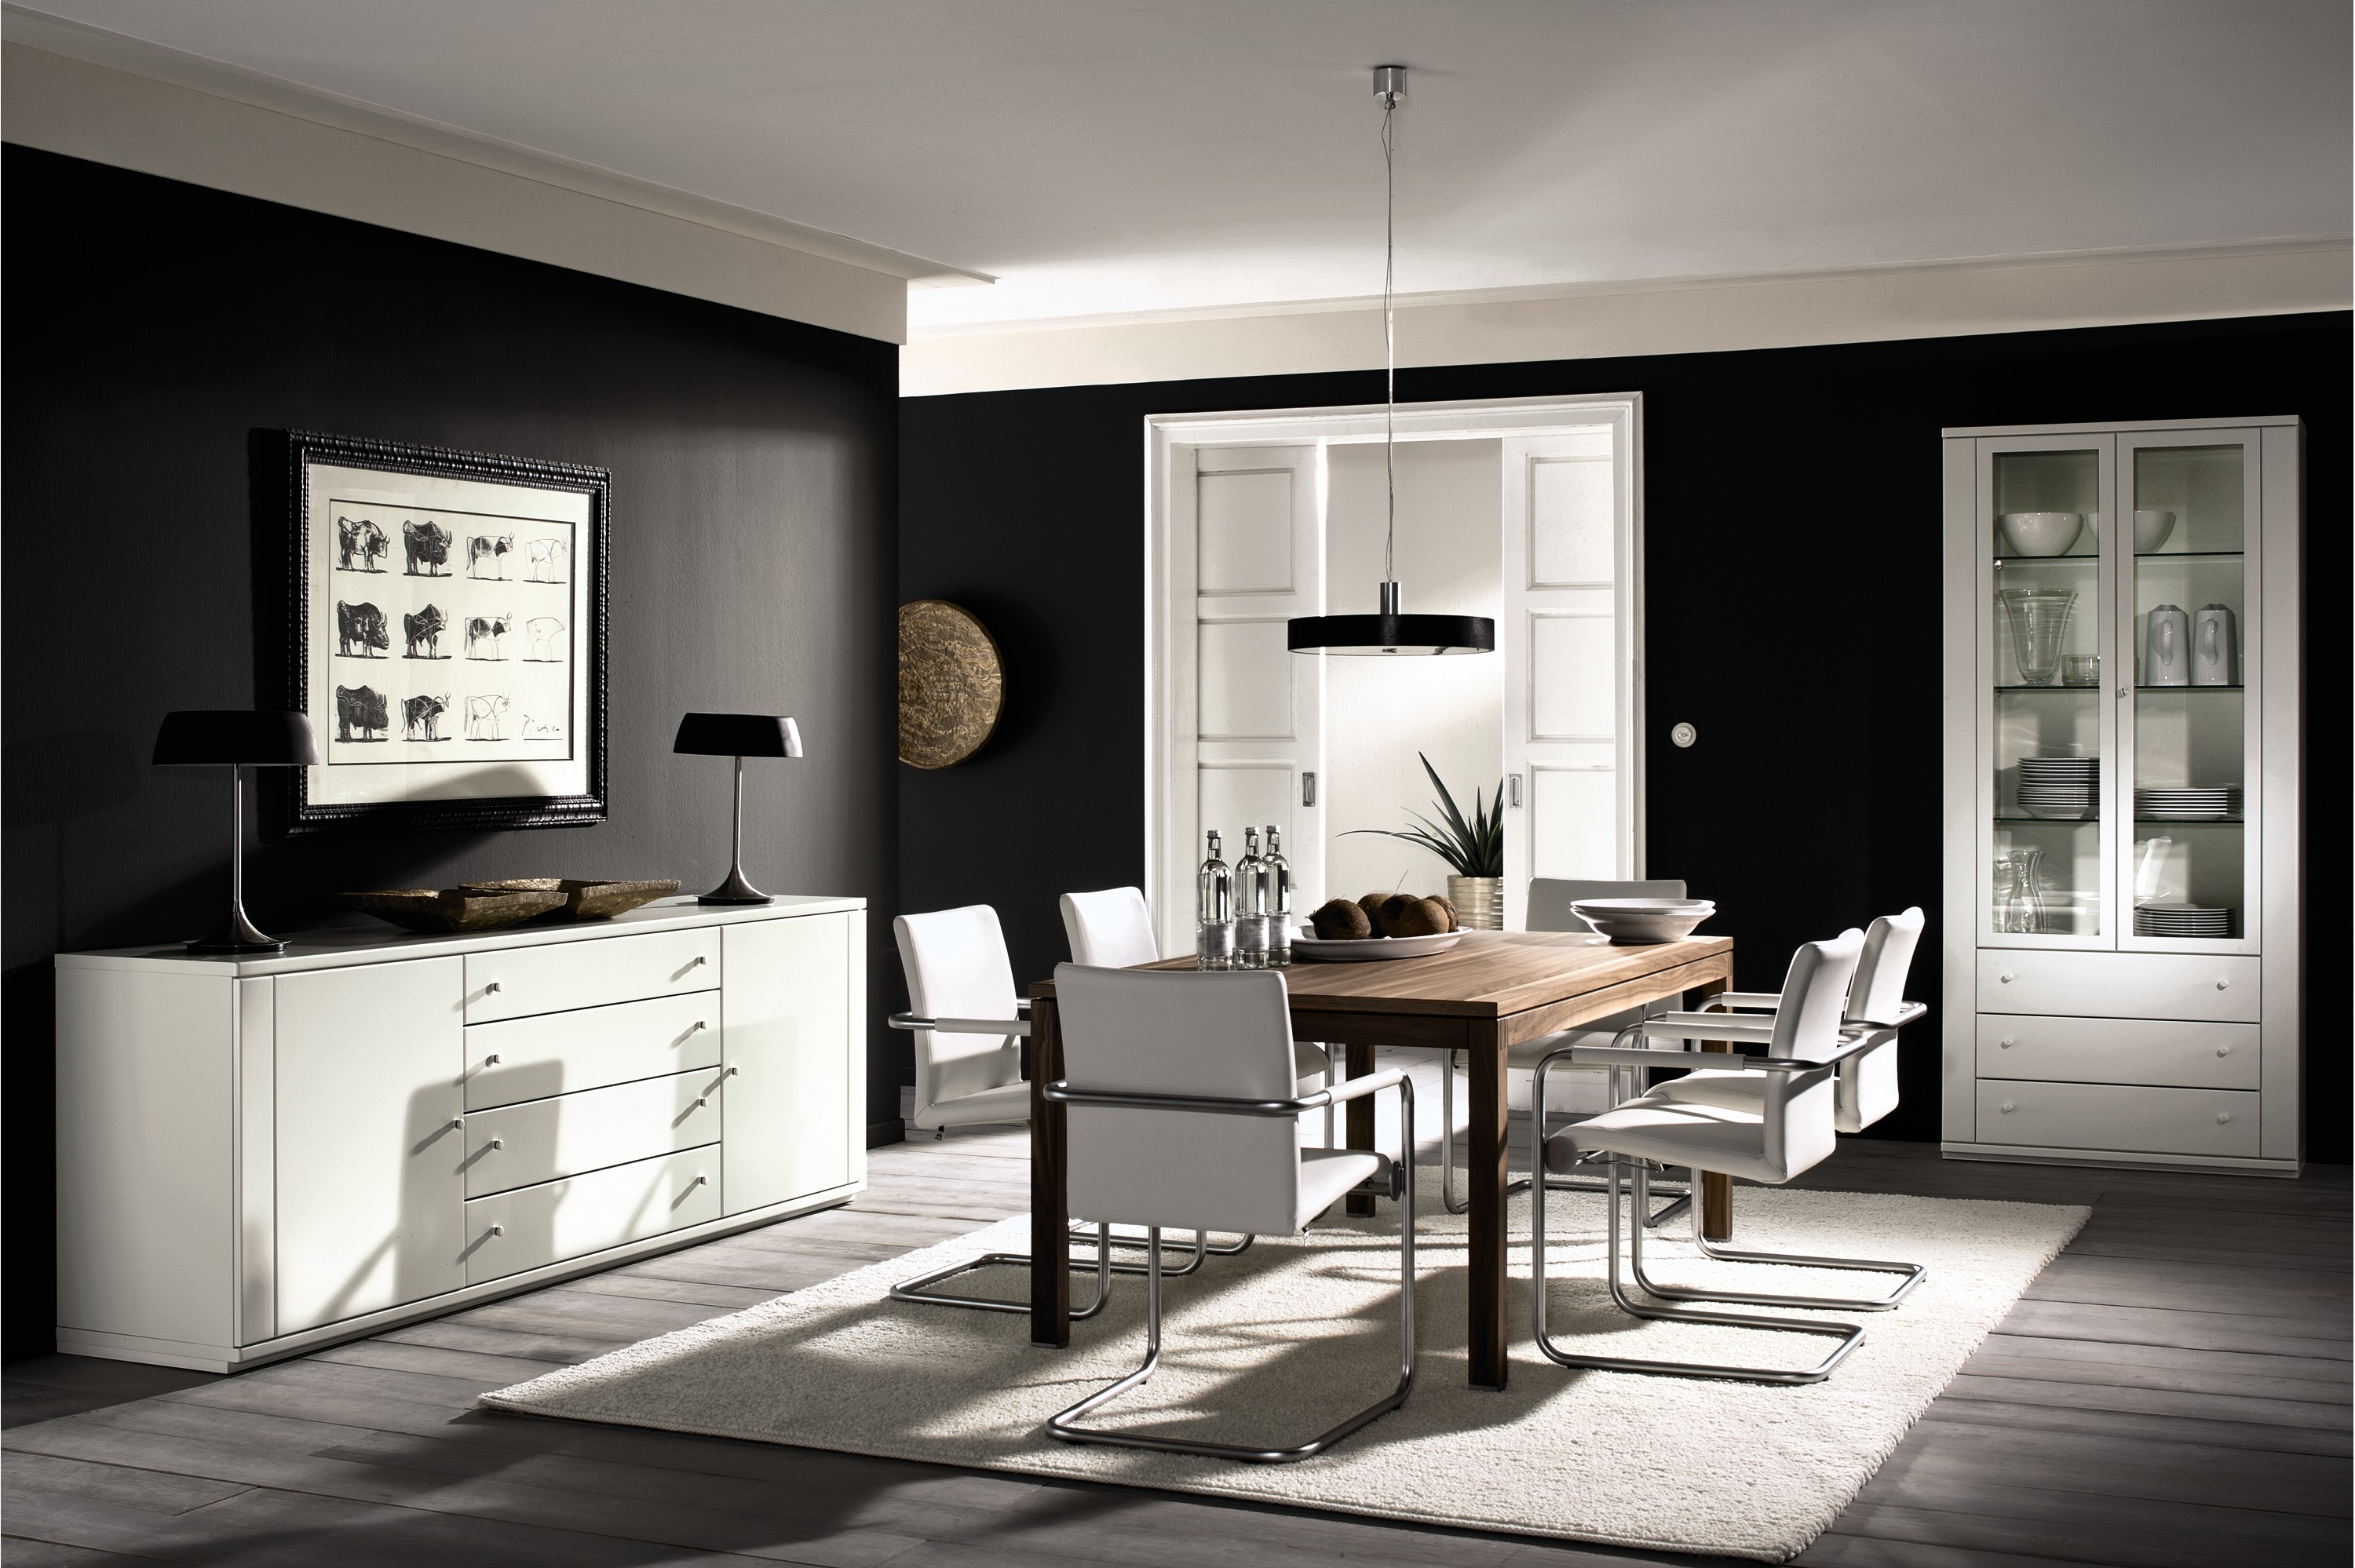 Interior-Design-Uk-in-2015